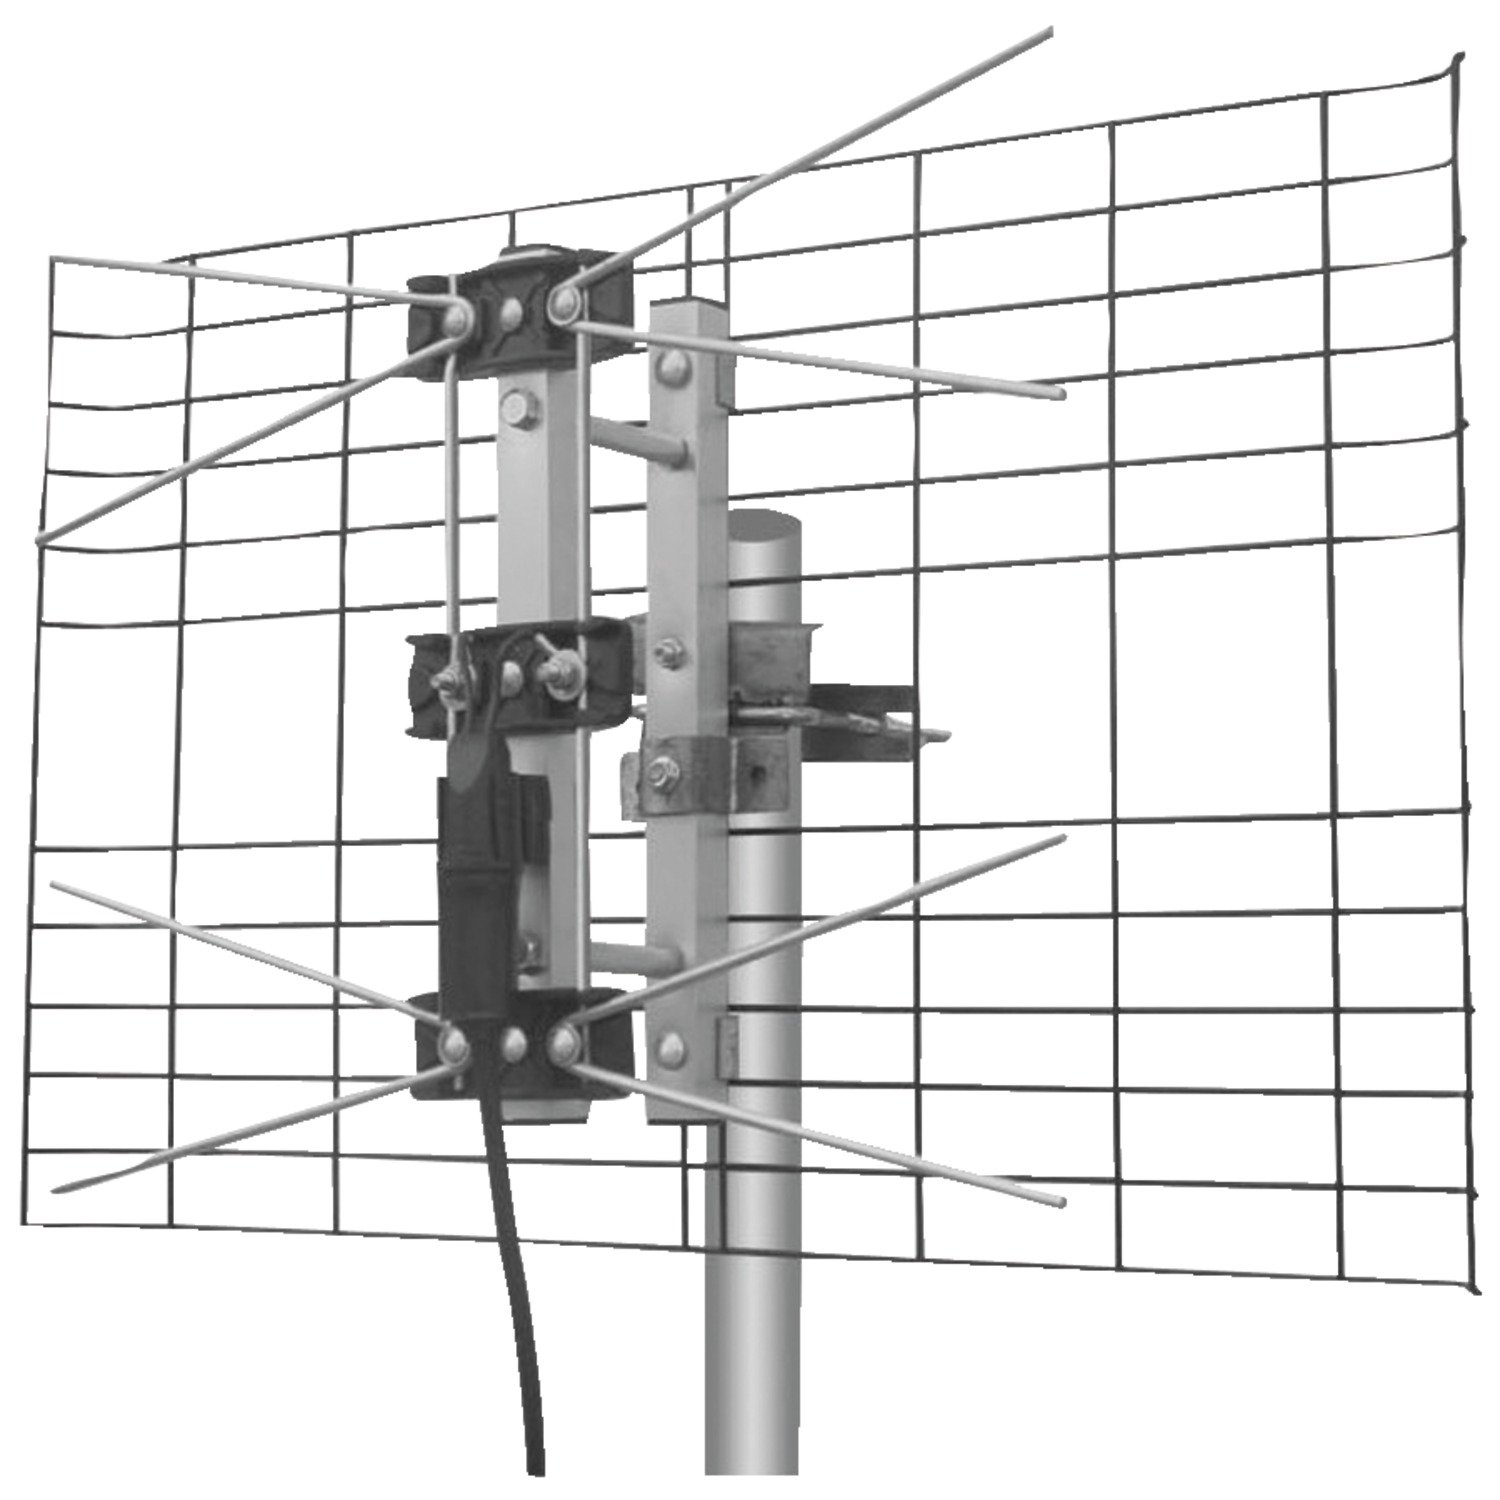 Eagle Aspen EASDTV2BUHF Directv Approved 2-Bay UHF Outdoor Antenna by Eagle Aspen